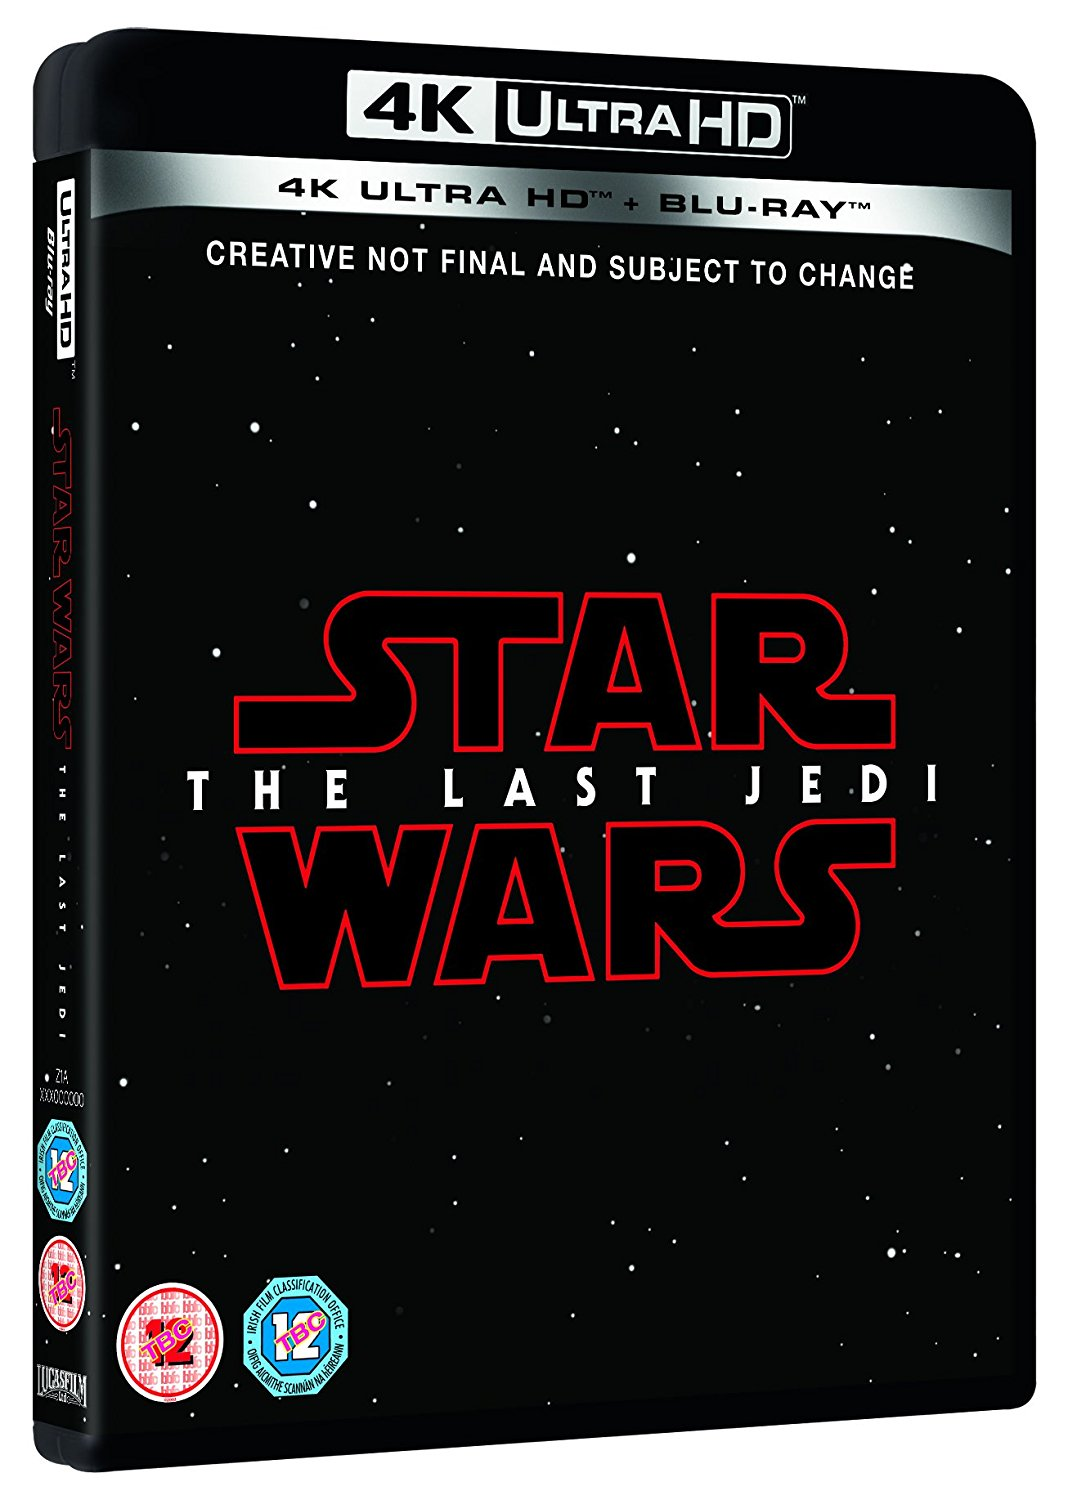 Star Wars Last Jedi 4k am.jpg